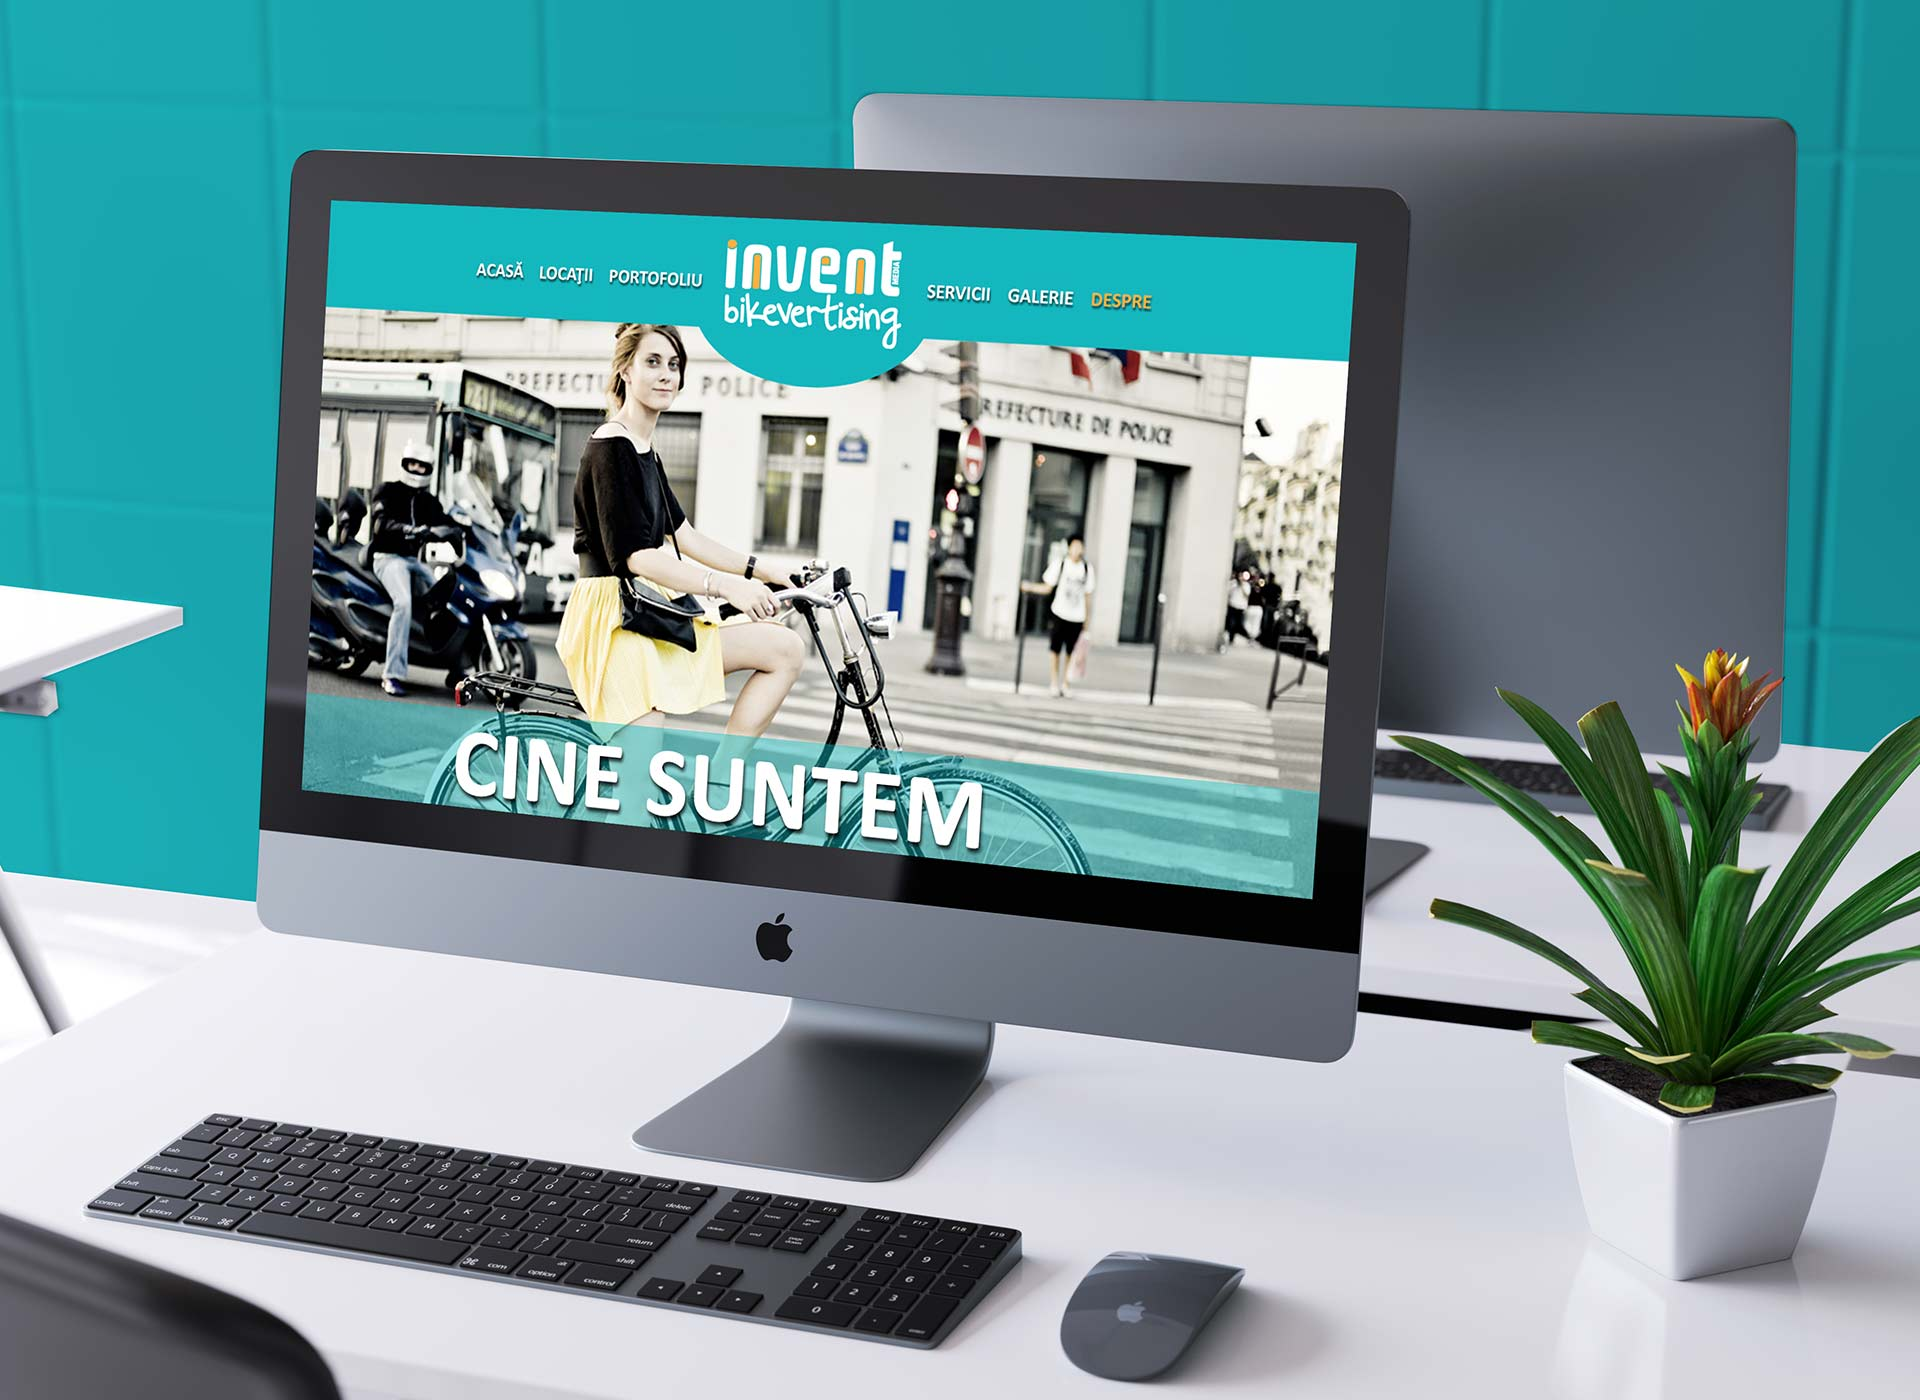 bikevertising webdesign project by inoveo